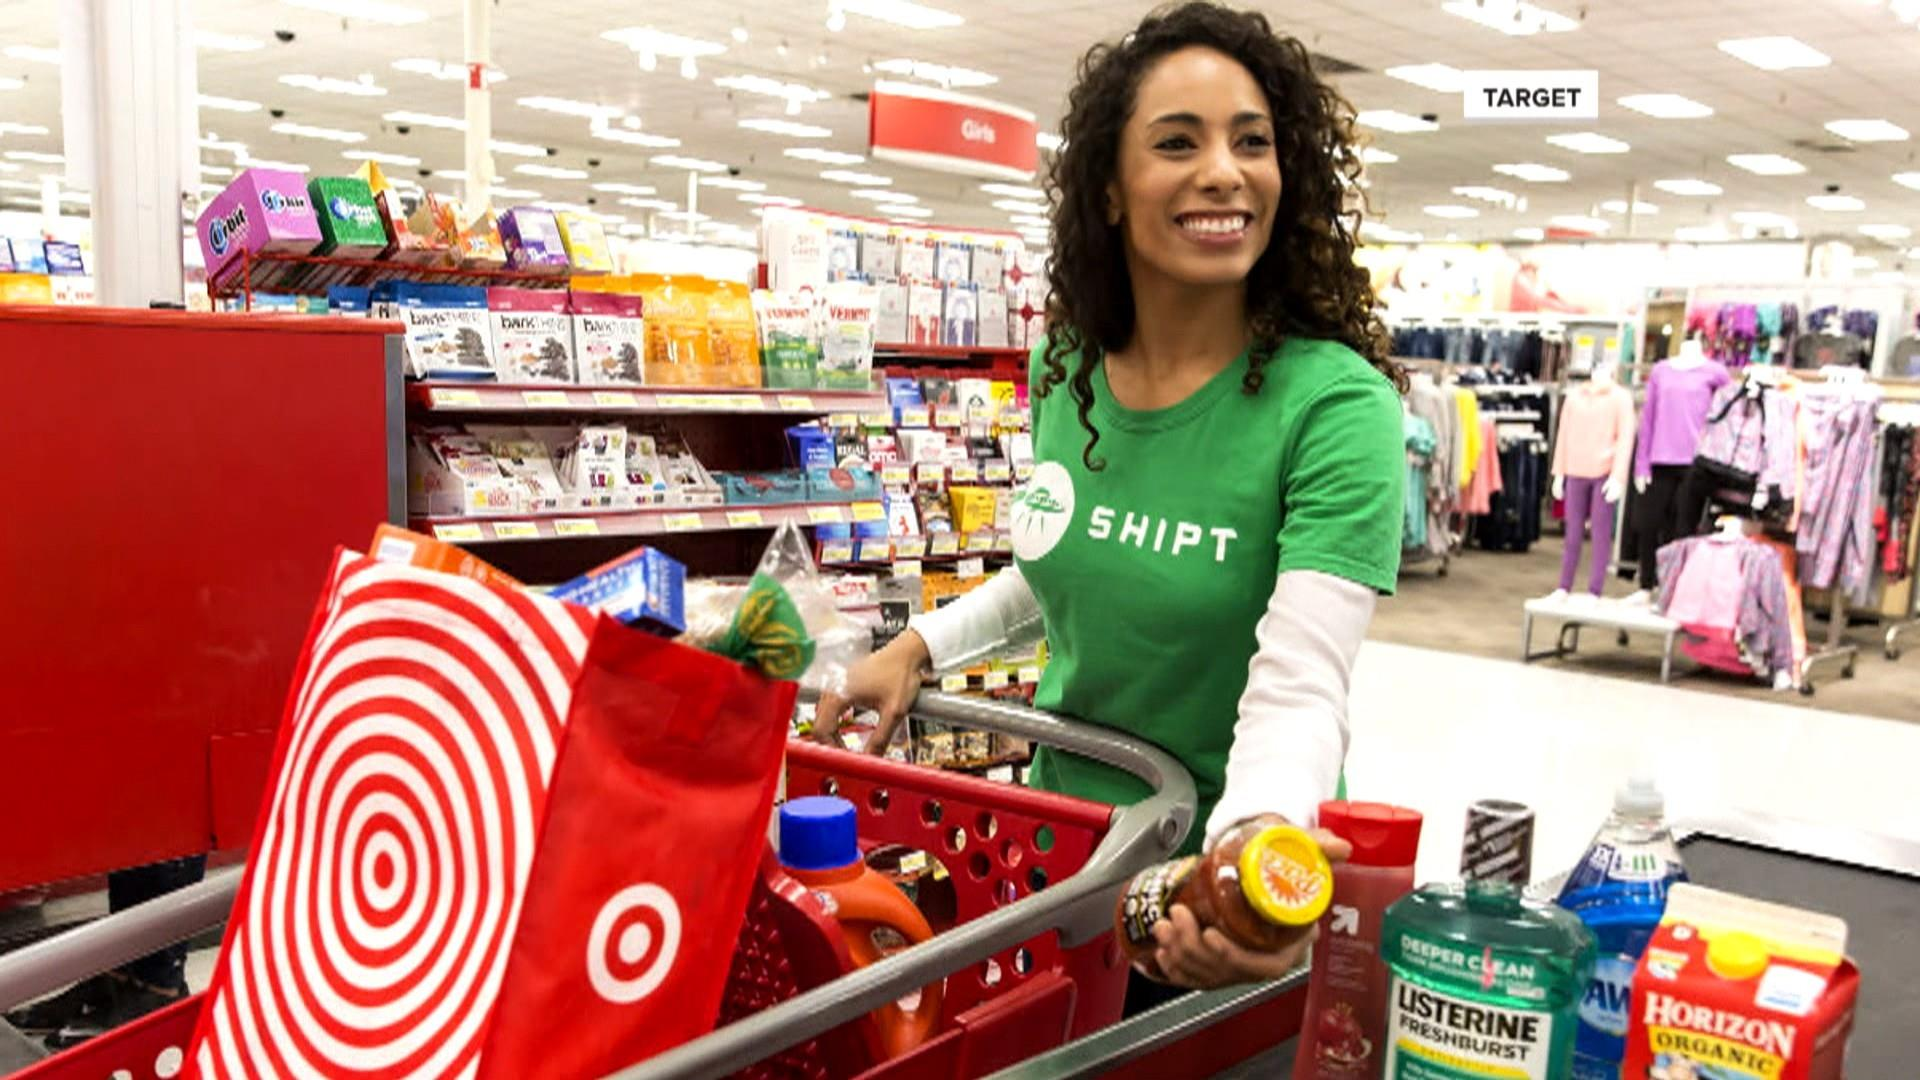 Target launches same-day delivery as retail wars heat up